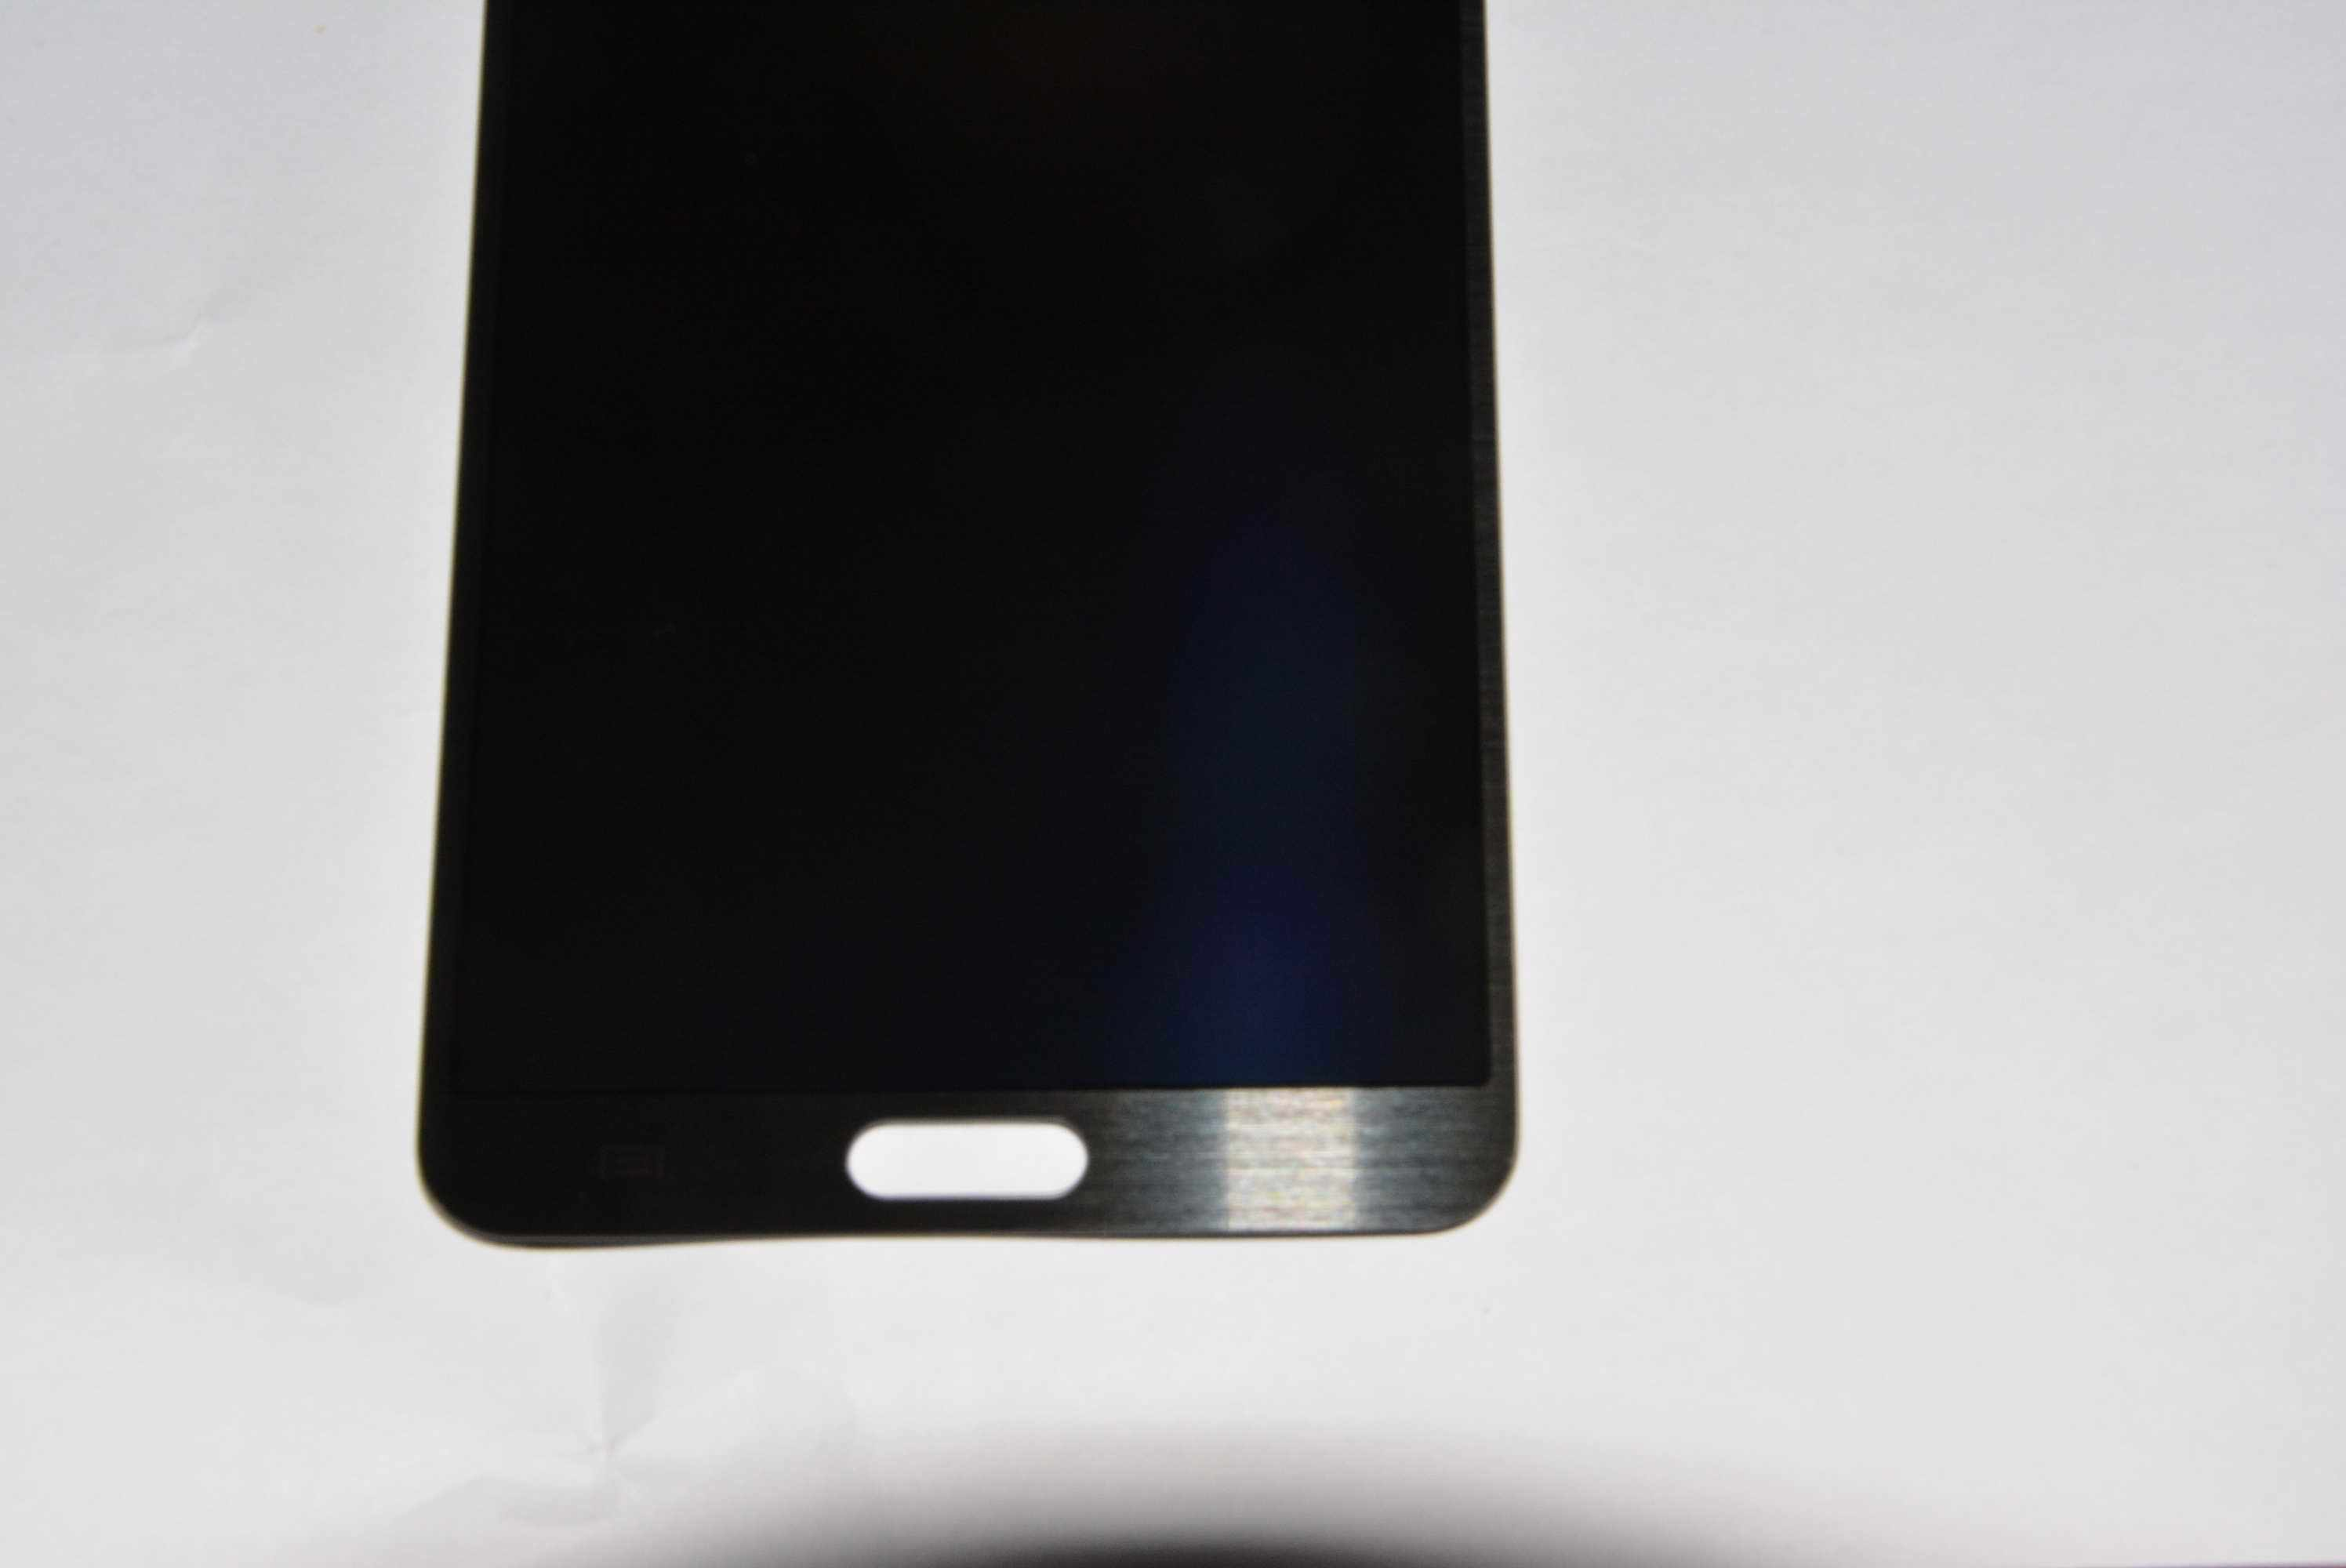 Galaxy Note 3 bezel leak